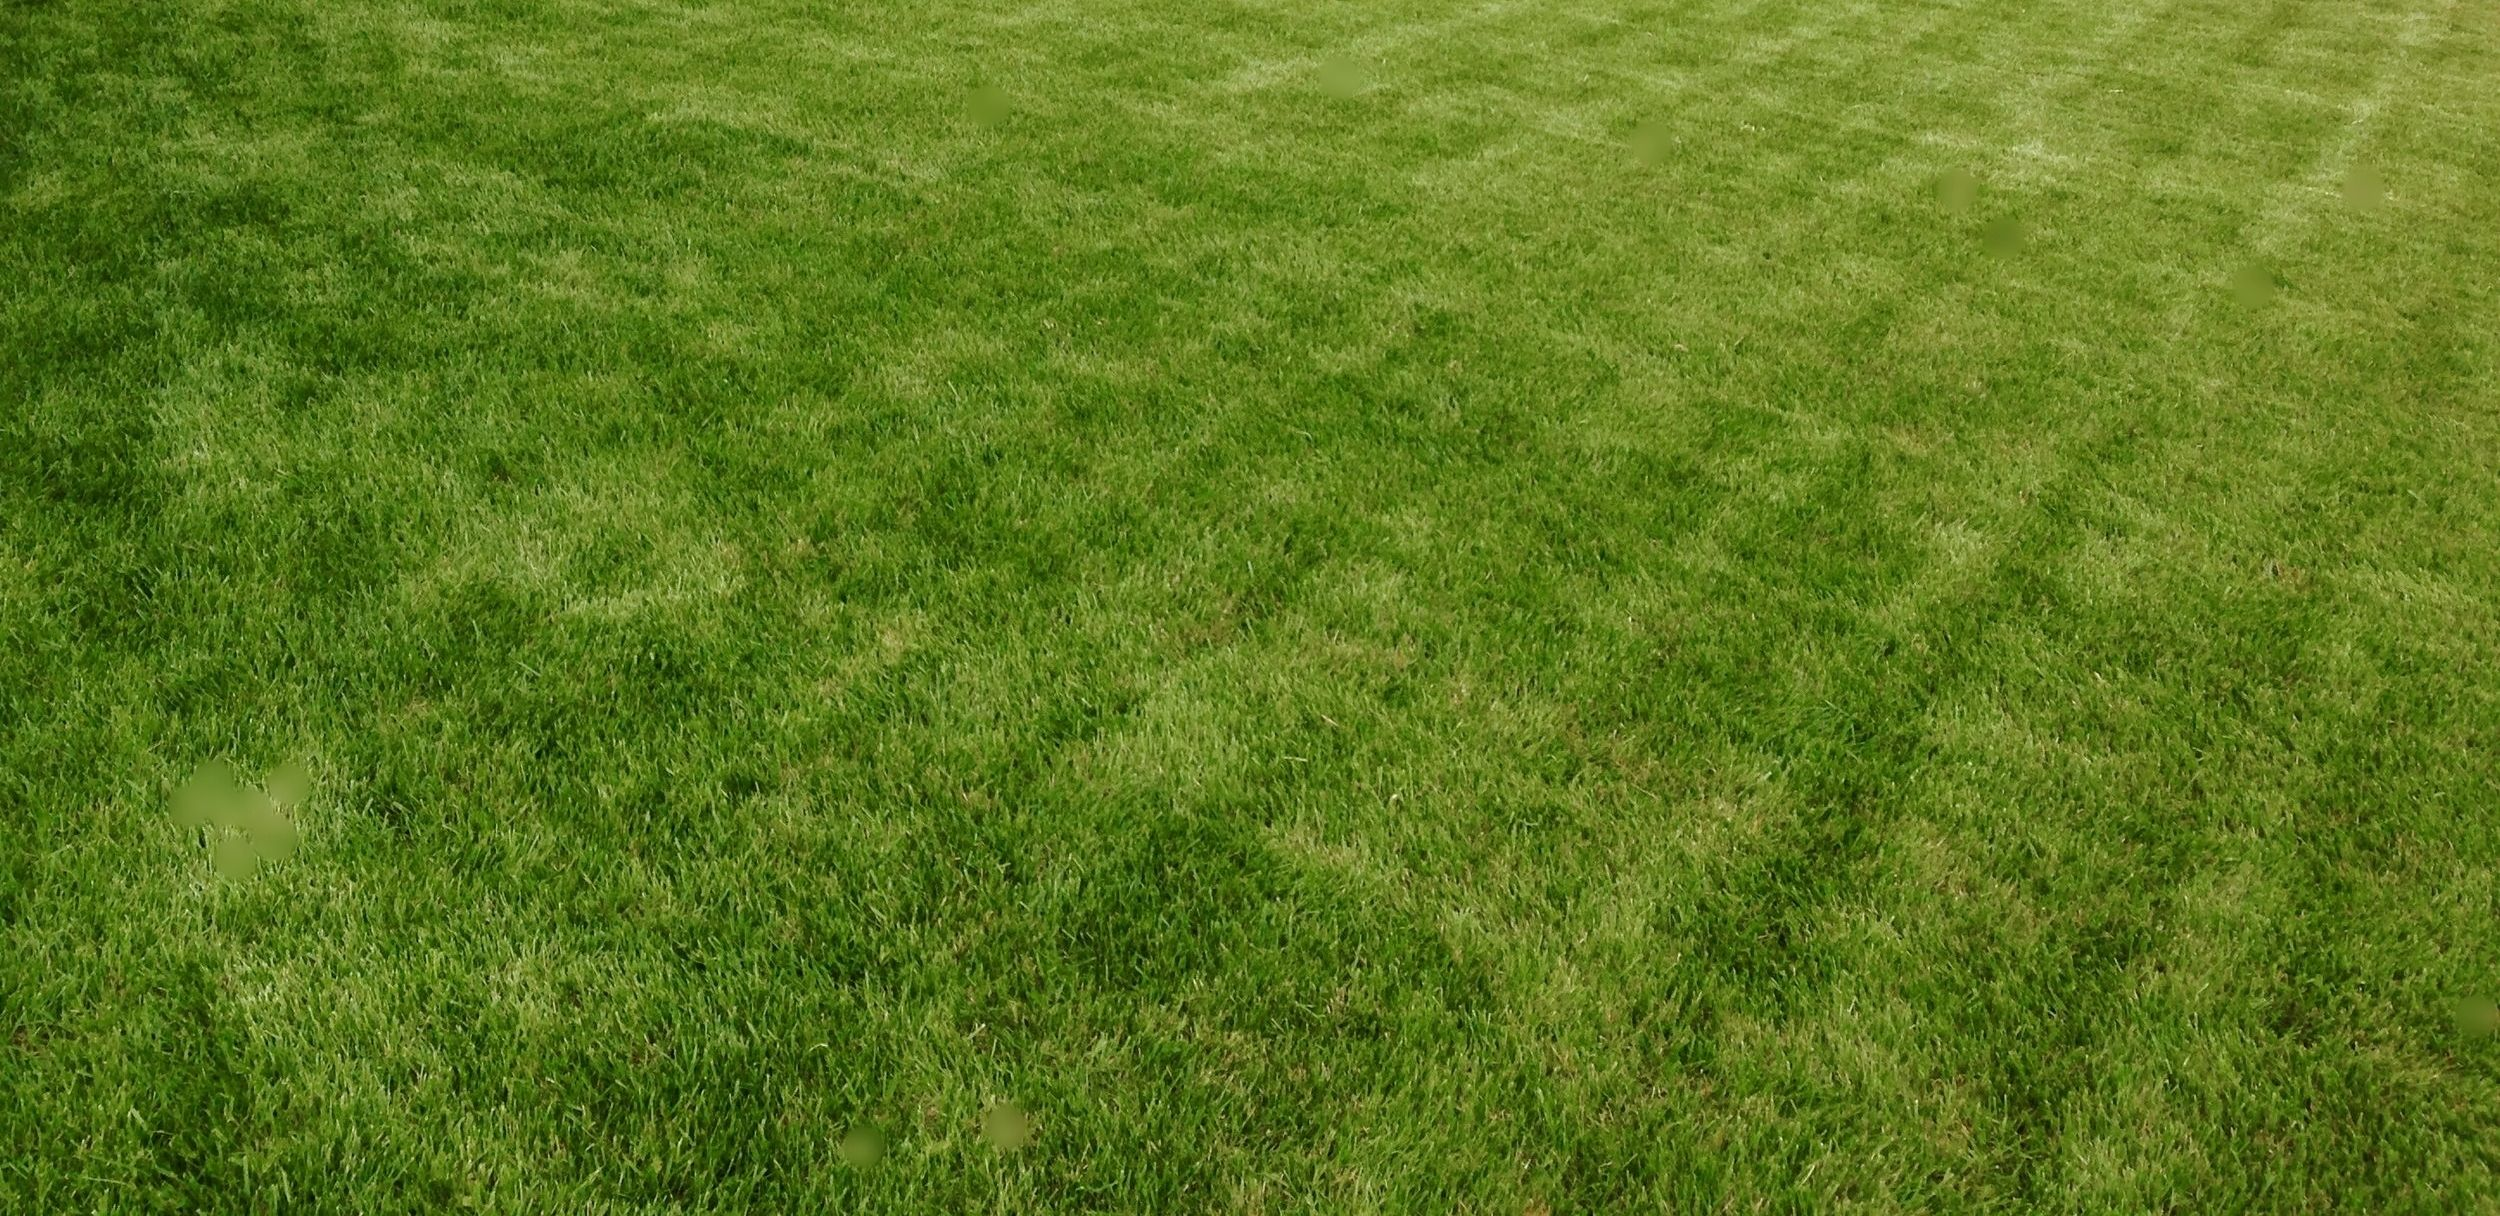 Our Products Make Your Lawn Look The Best It Ever Has